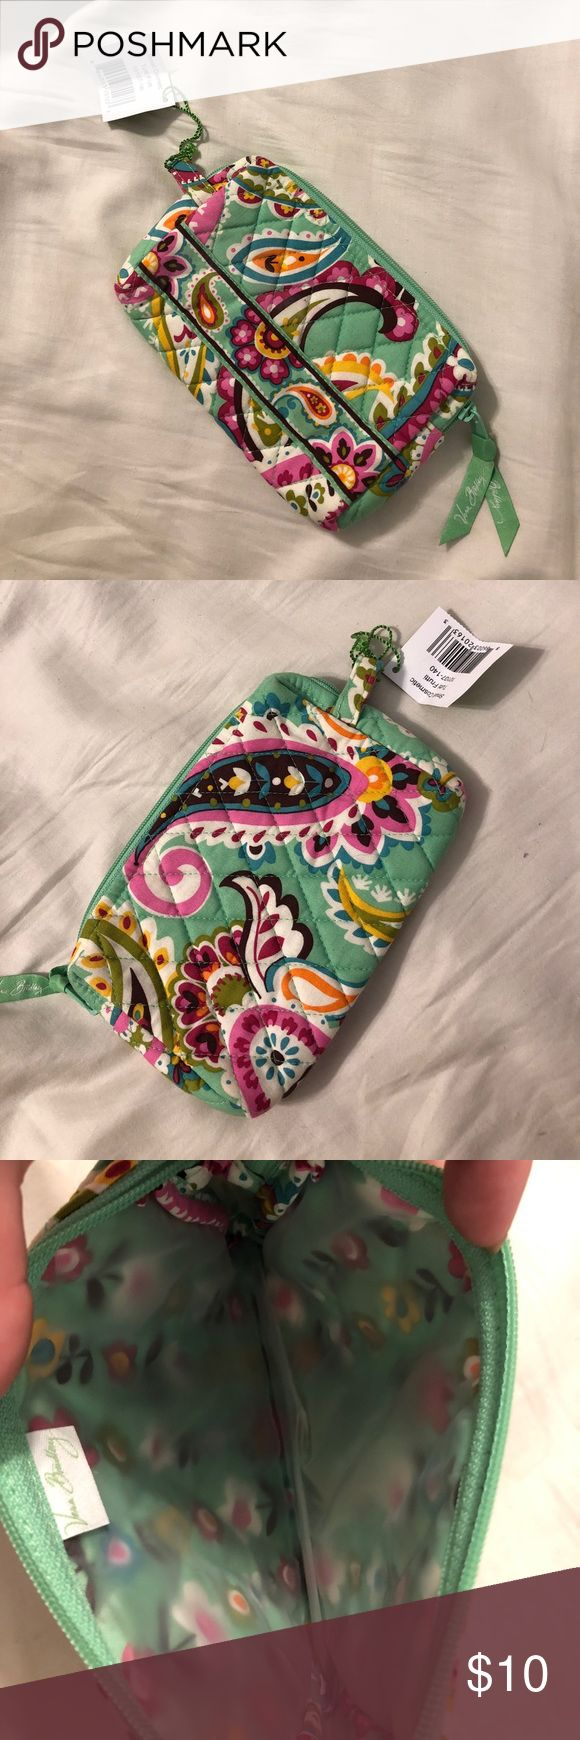 💚 Vera Bradley Small Cosmetic Bag NWT 💚 Tutti Frutti Fabric Small Cosmetics Bag, also would be great for toloetries on vacation. Brand New and as cute as can be! Vera Bradley Bags Cosmetic Bags & Cases